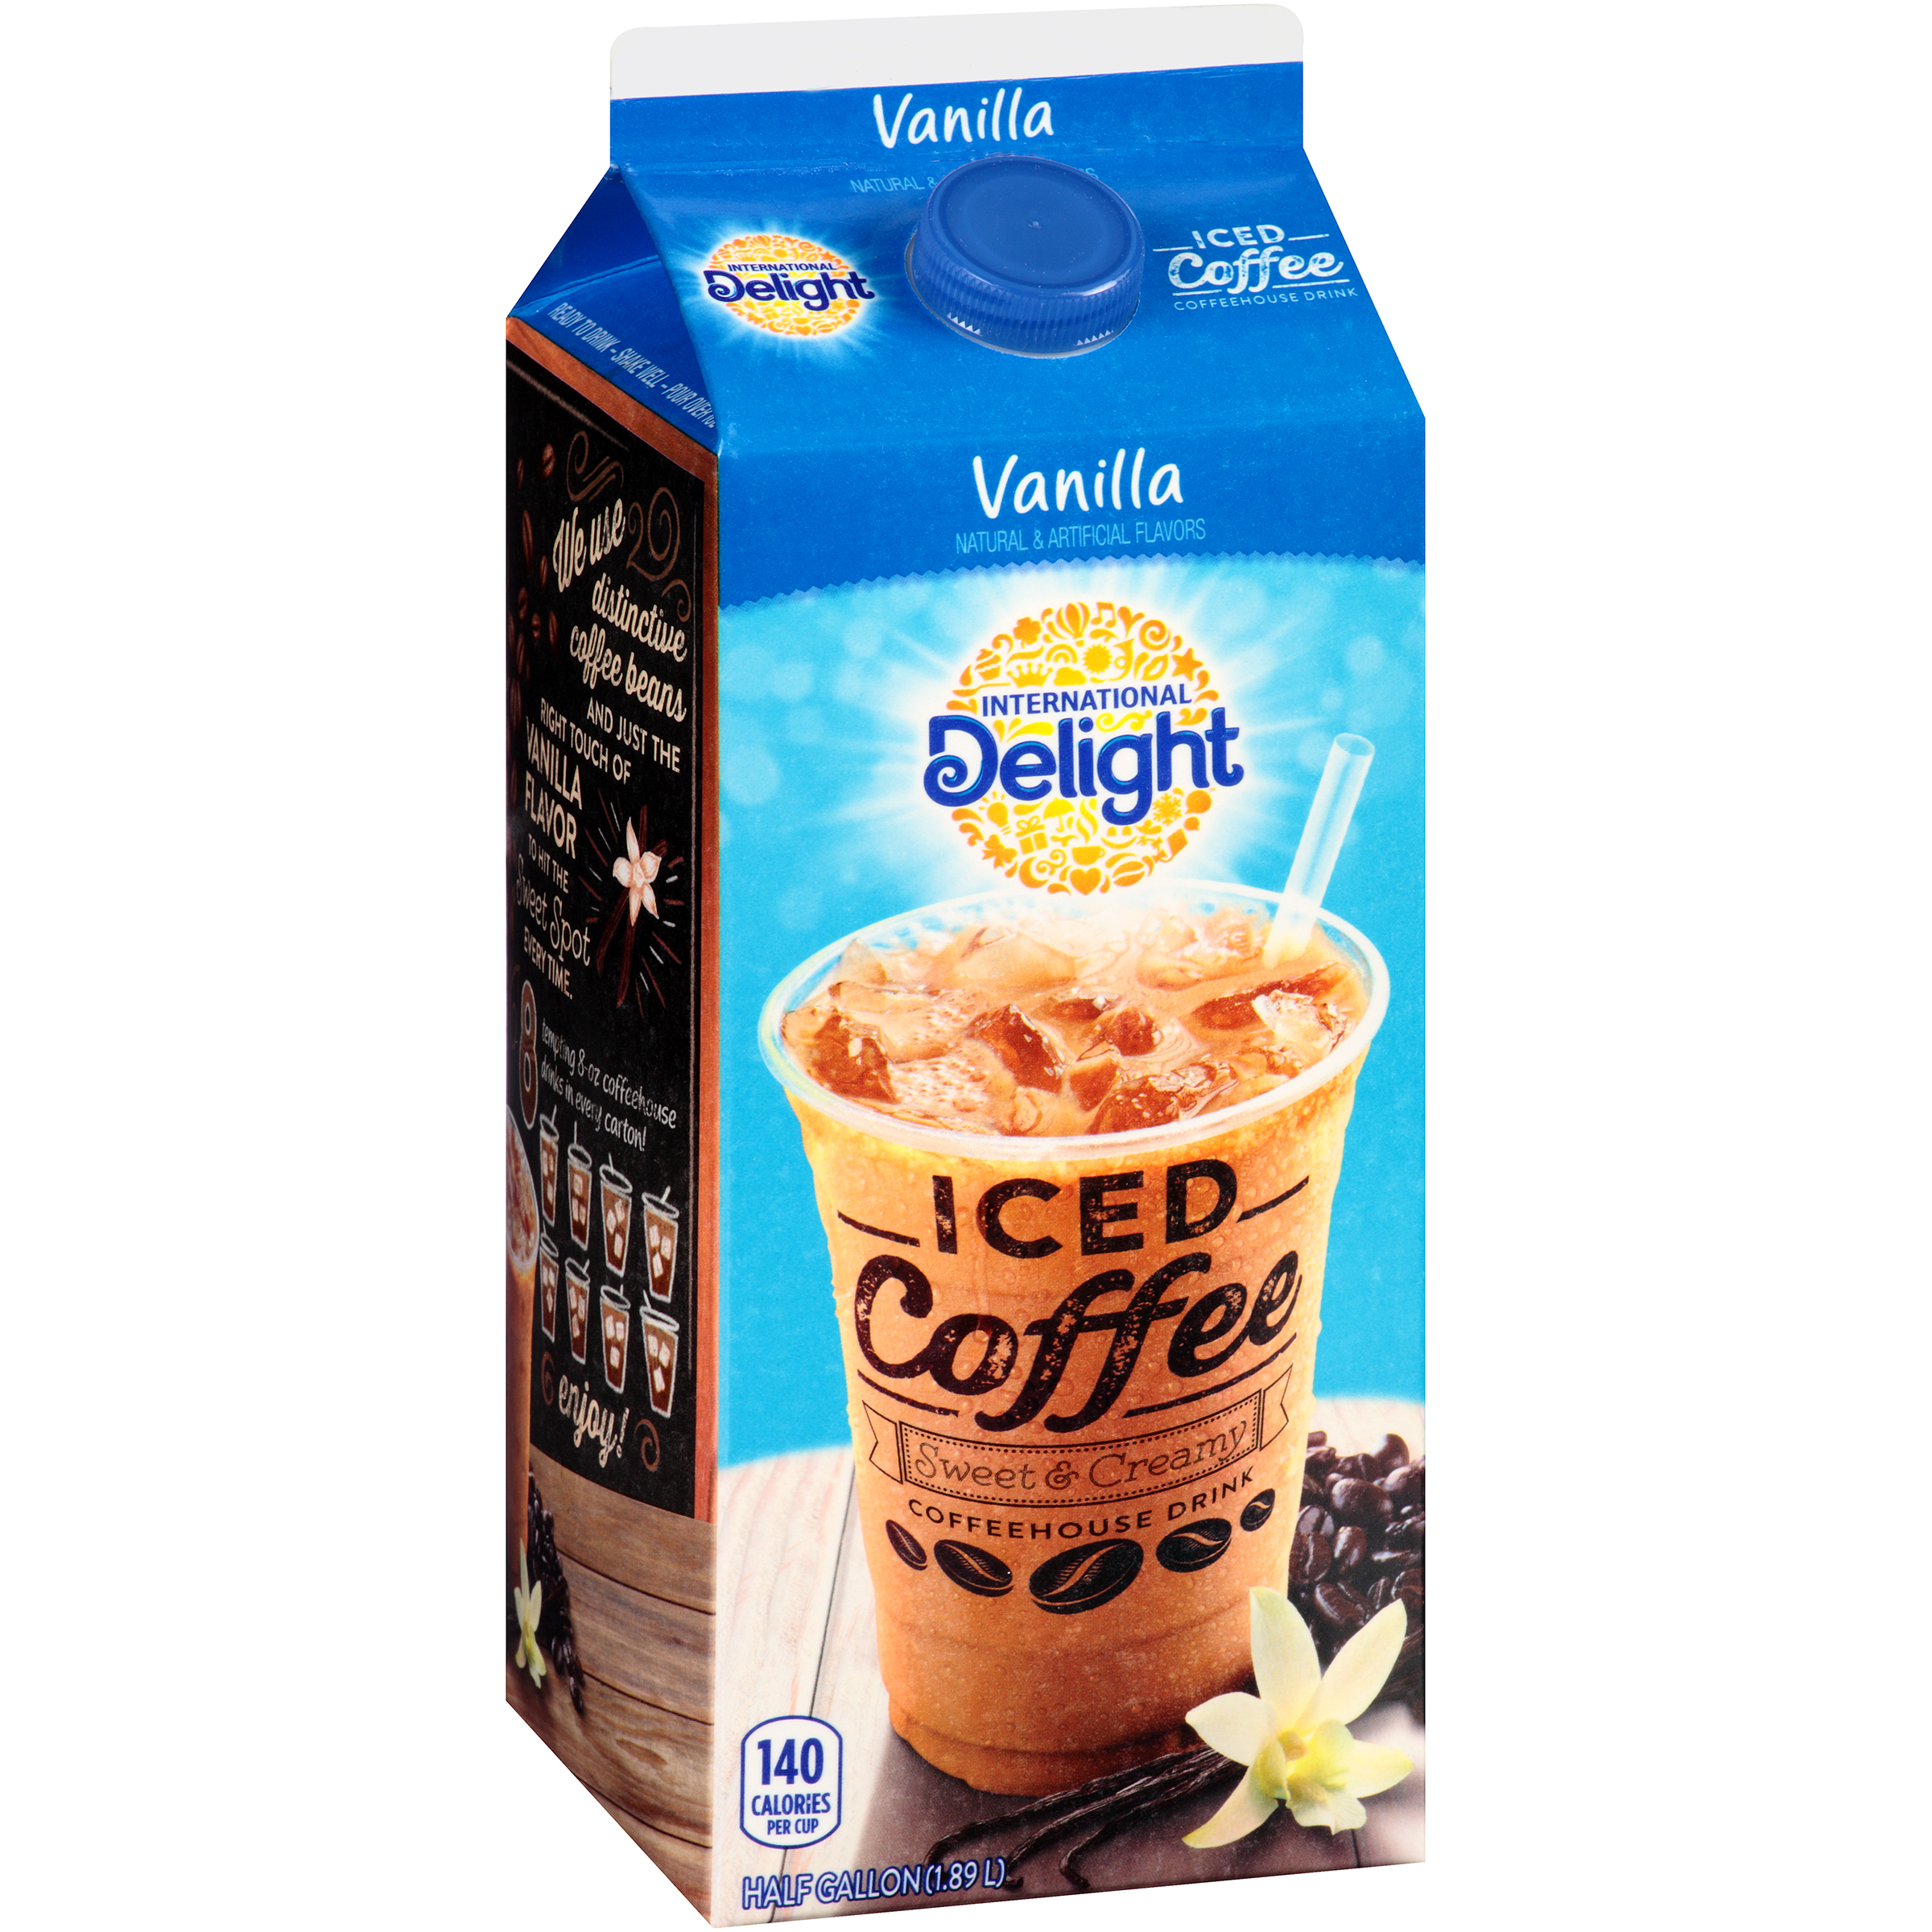 International Delight™ Vanilla Iced Coffee 0.5 gal. Carton